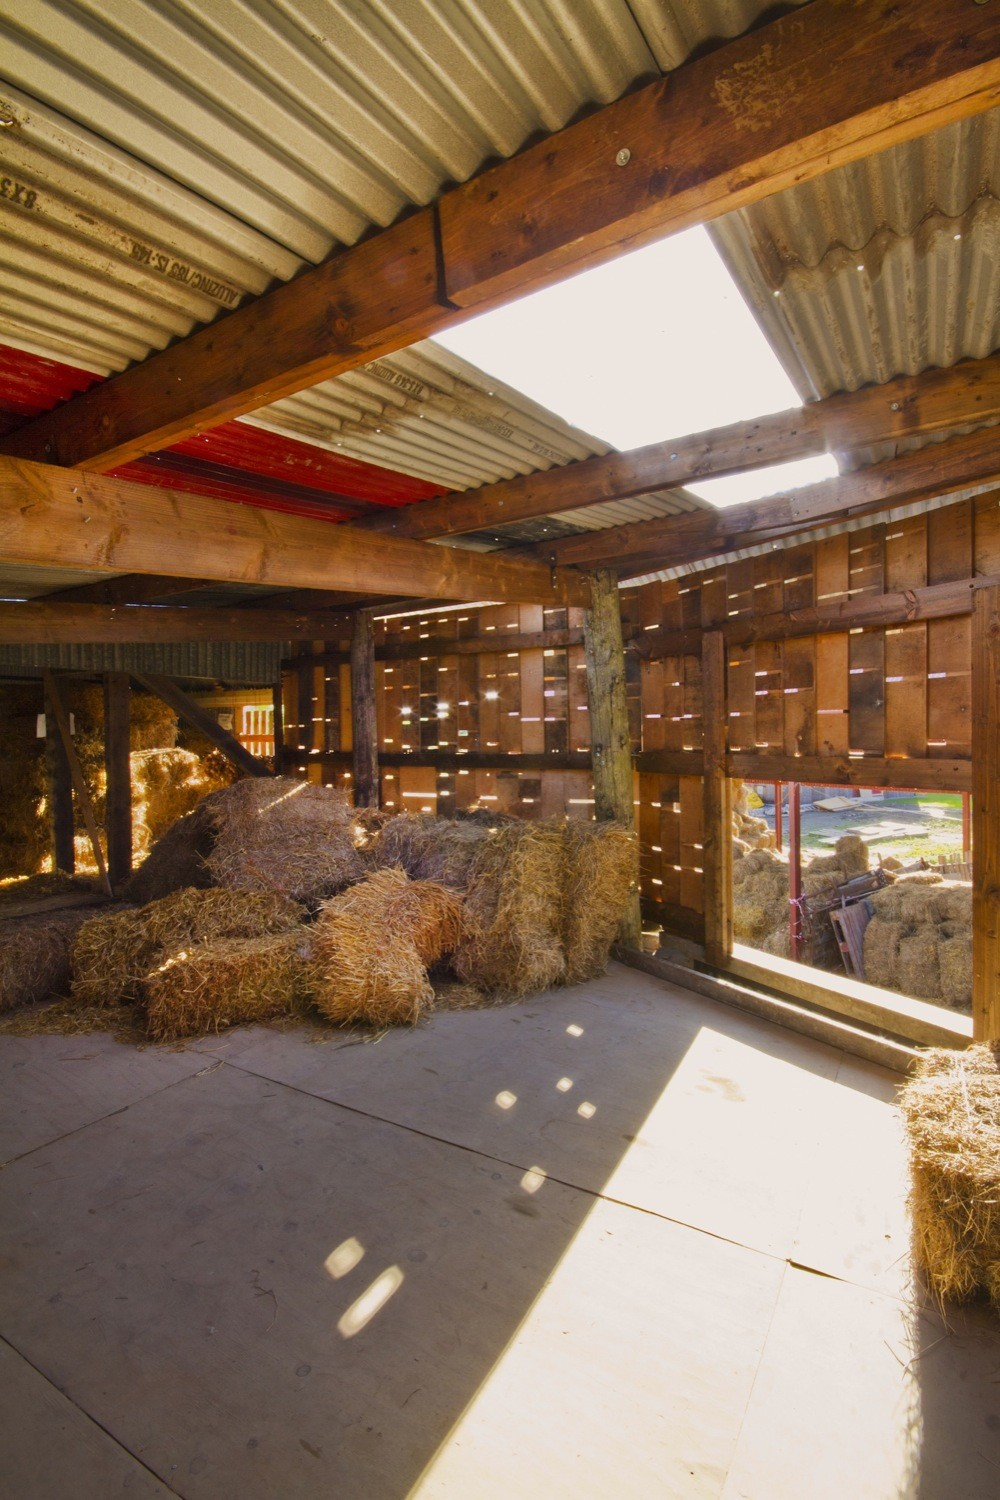 Cowshed__design_and_build_workshops_led_by_Cowshed_Collective._Image_by_Ste_Murray_(3).jpg